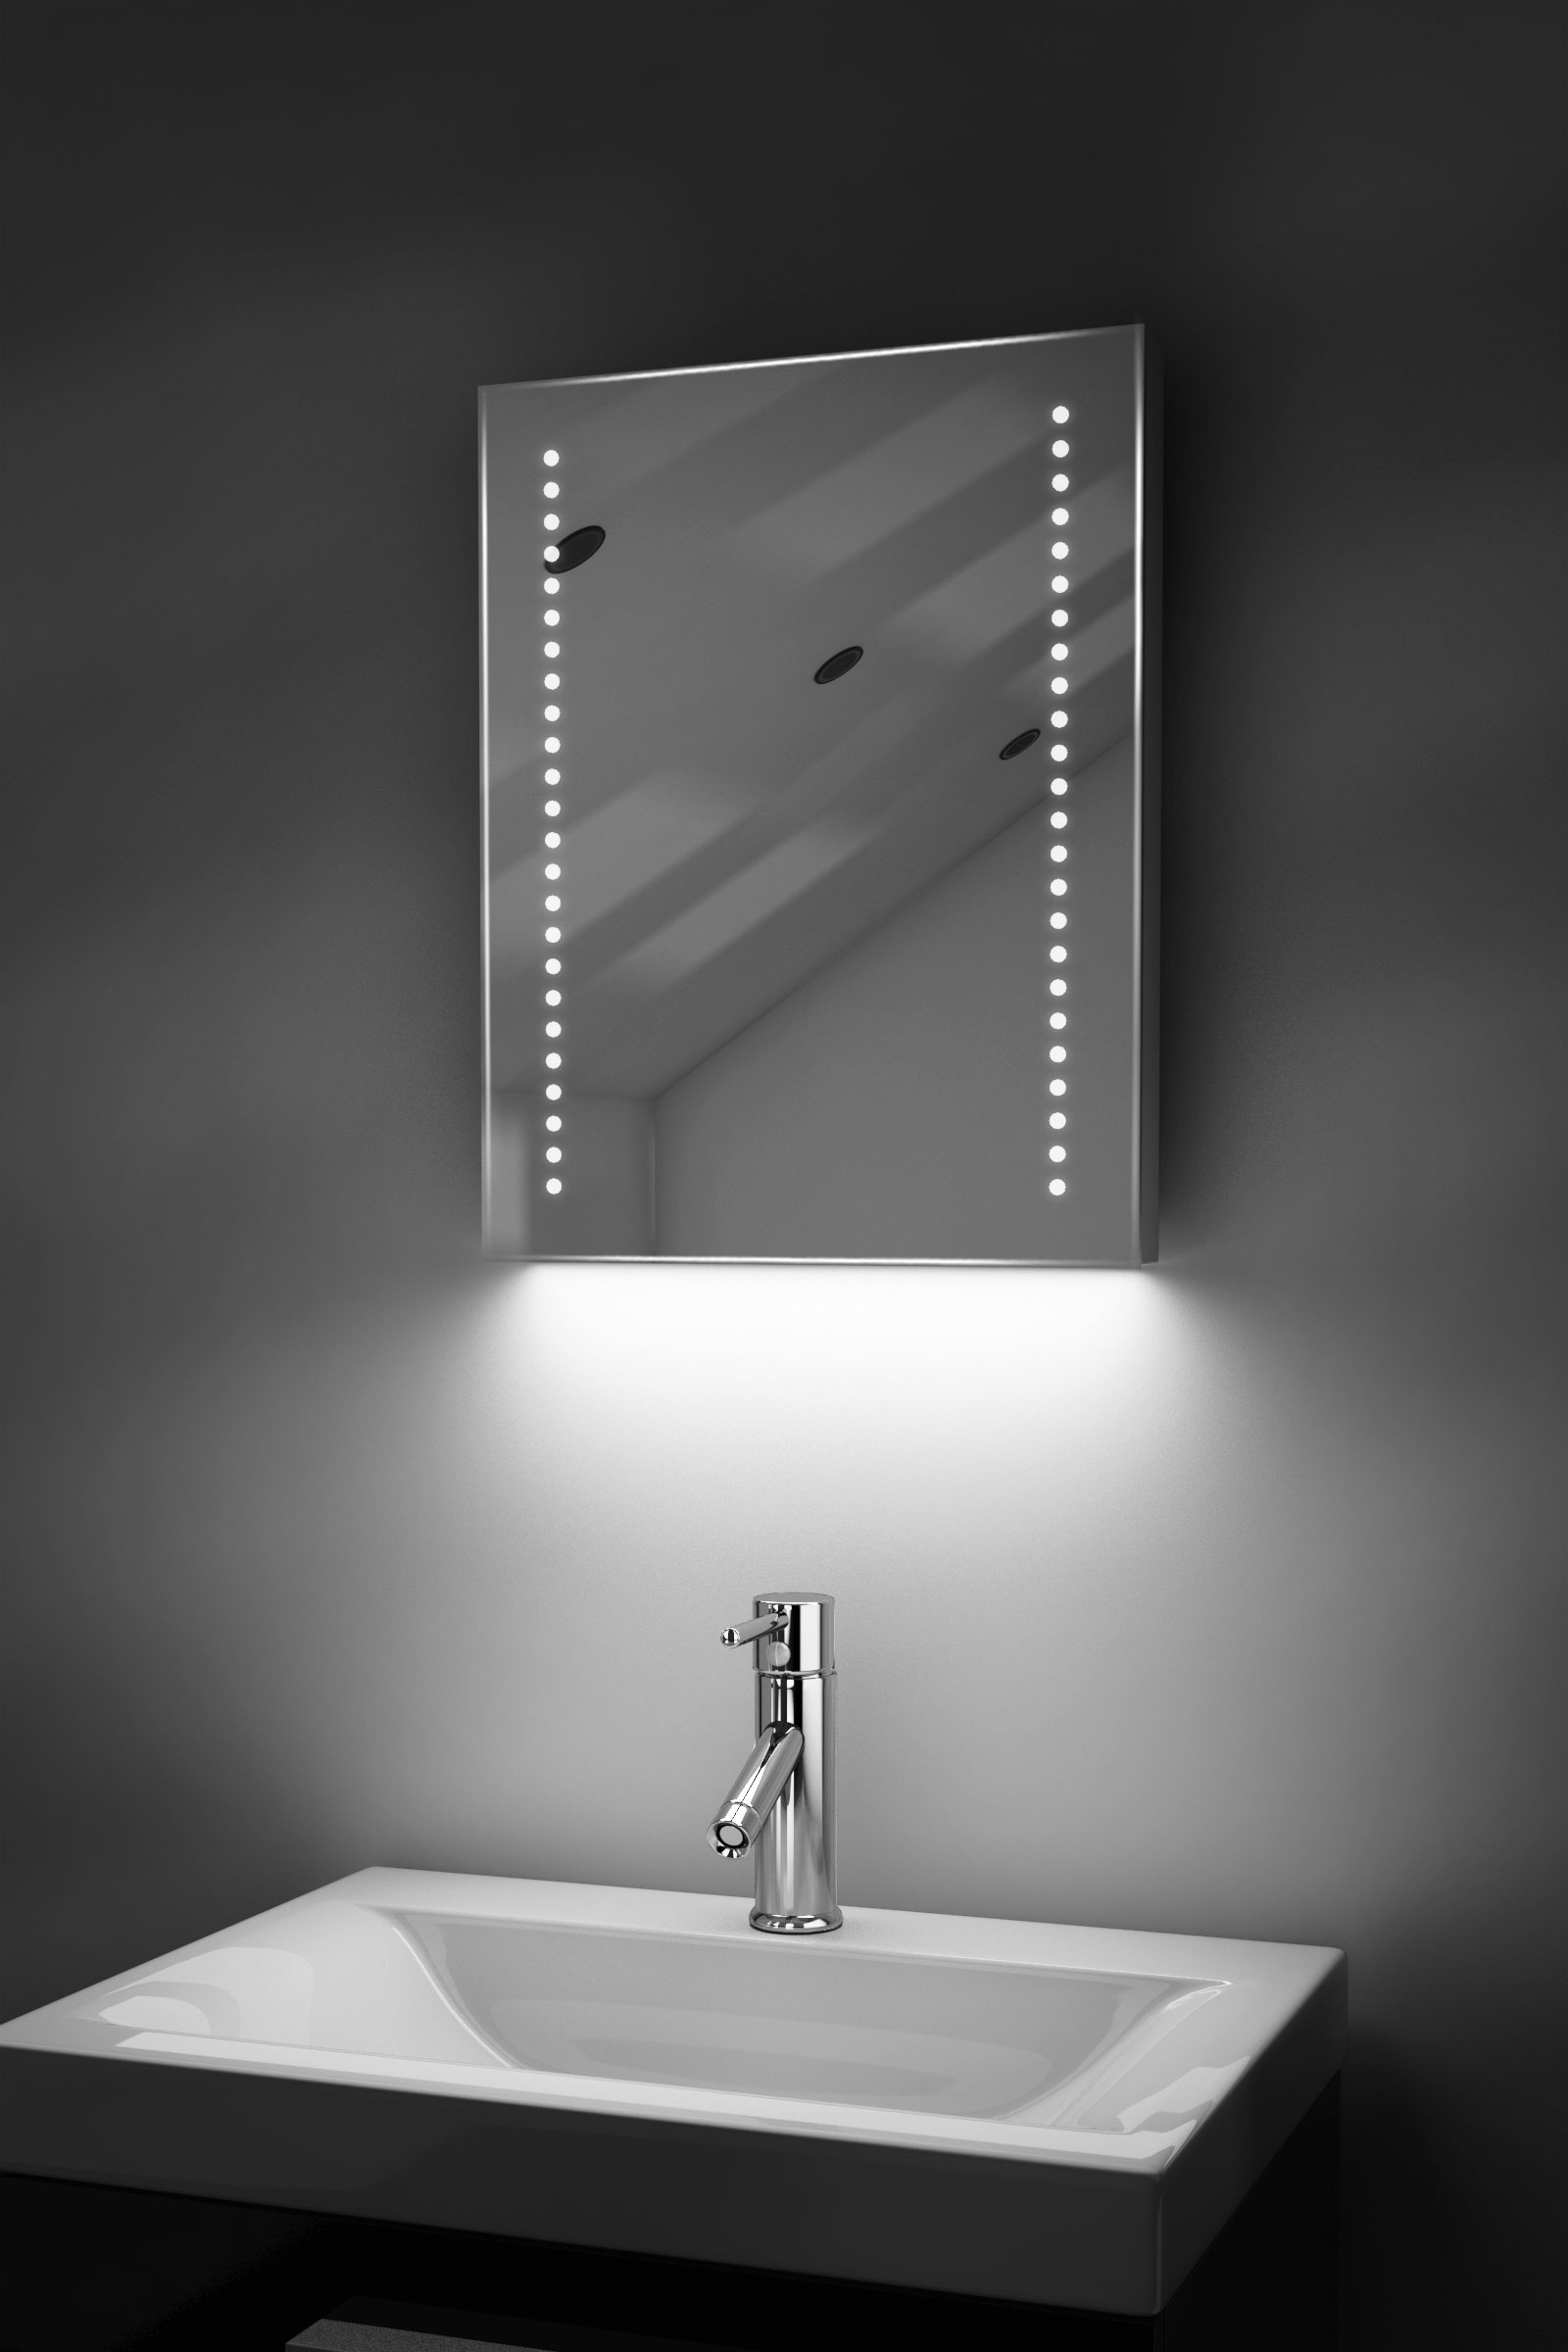 Auto Colour Change Rgb Shaver Bathroom Mirror With Demister & Sensor K36Srgb by Powerful Vision Ltd.